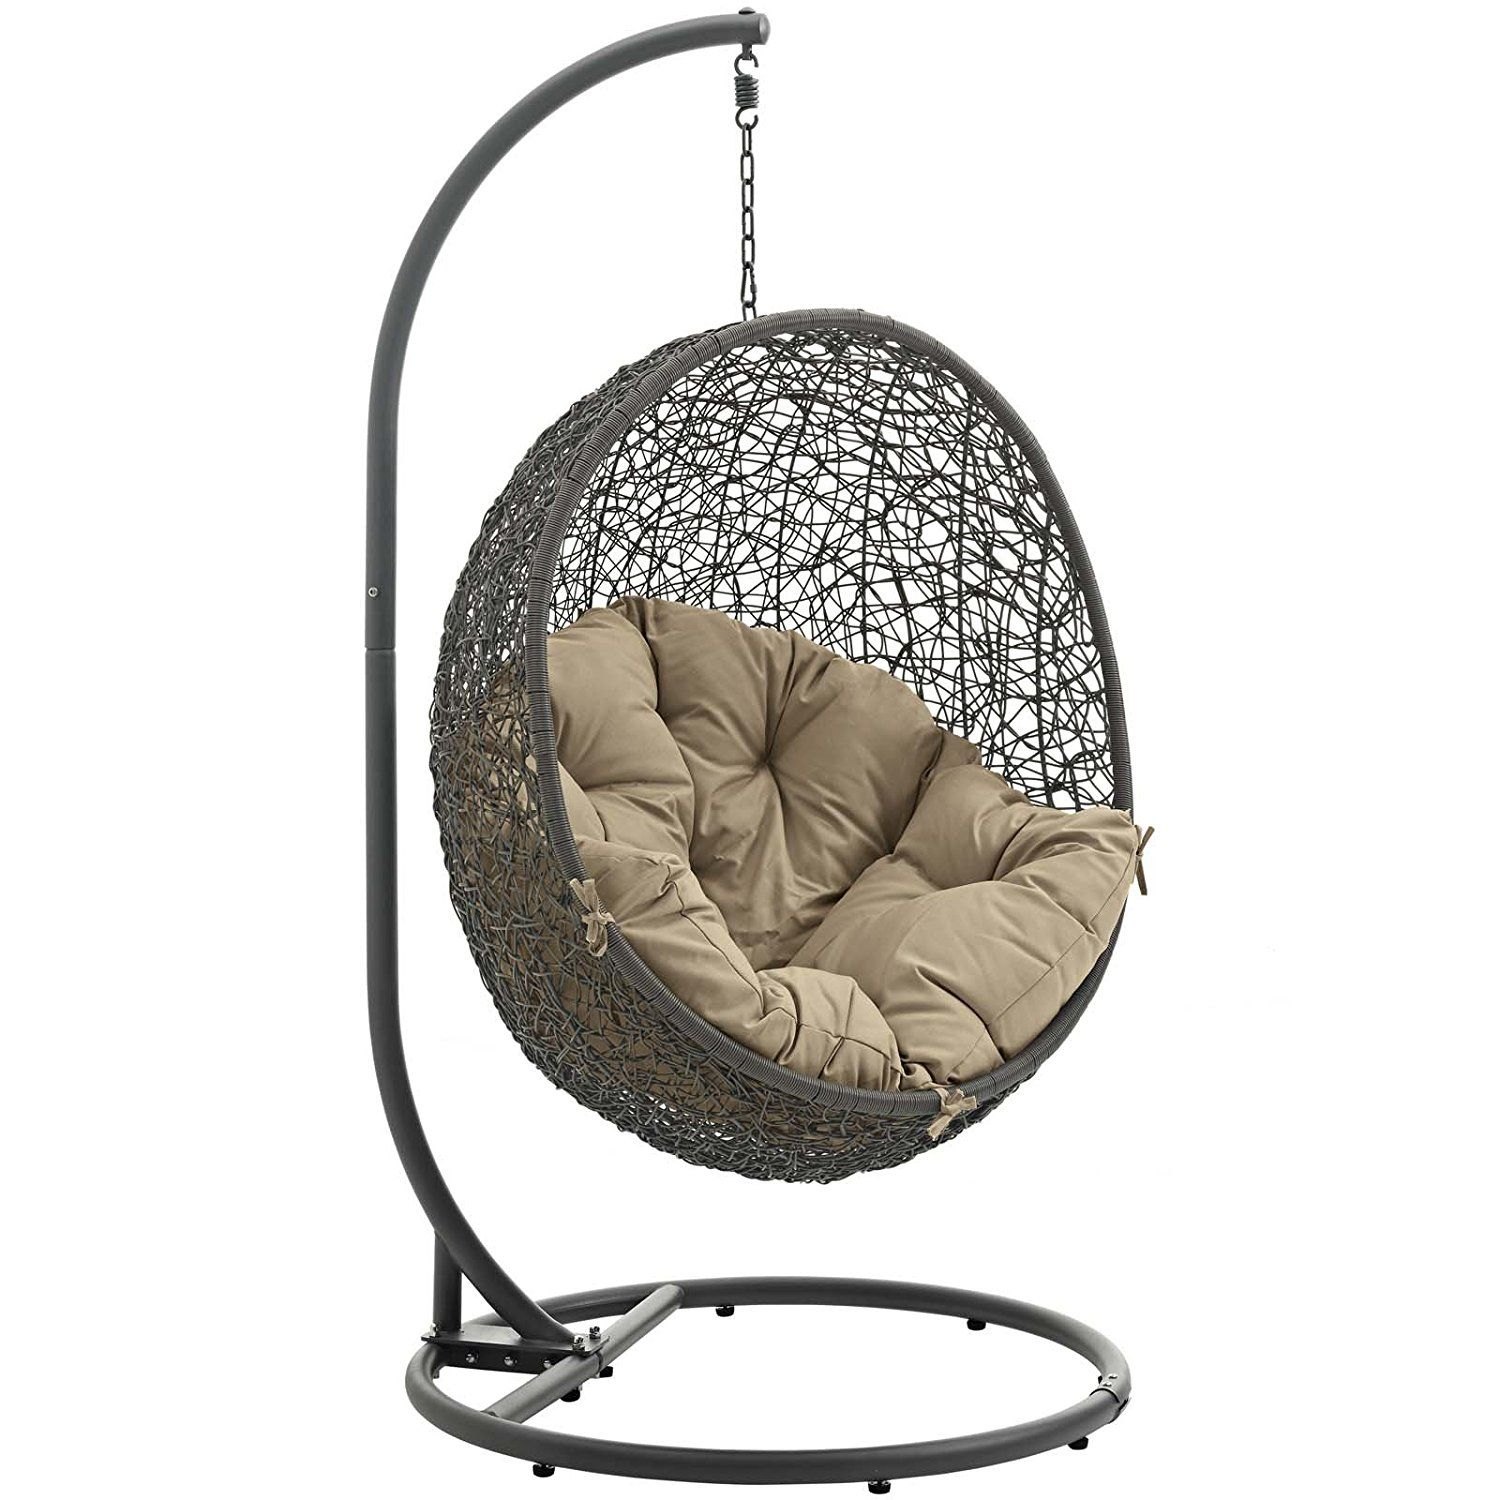 Modway hide outdoor patio swing chair gray mocha garden u outdoor